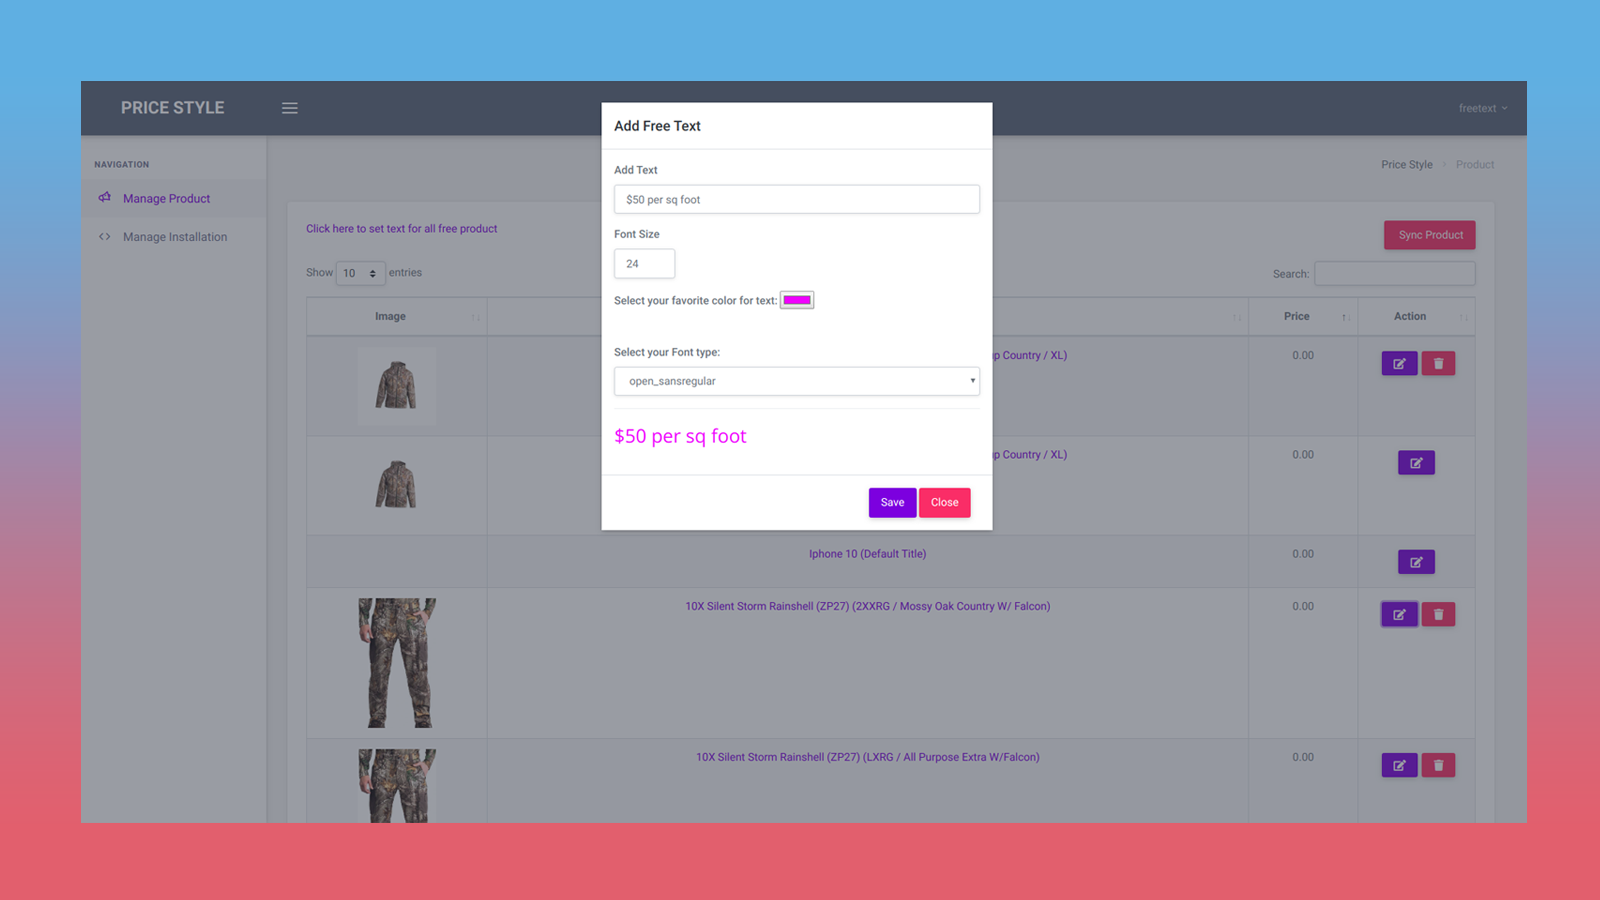 Other Product setting page